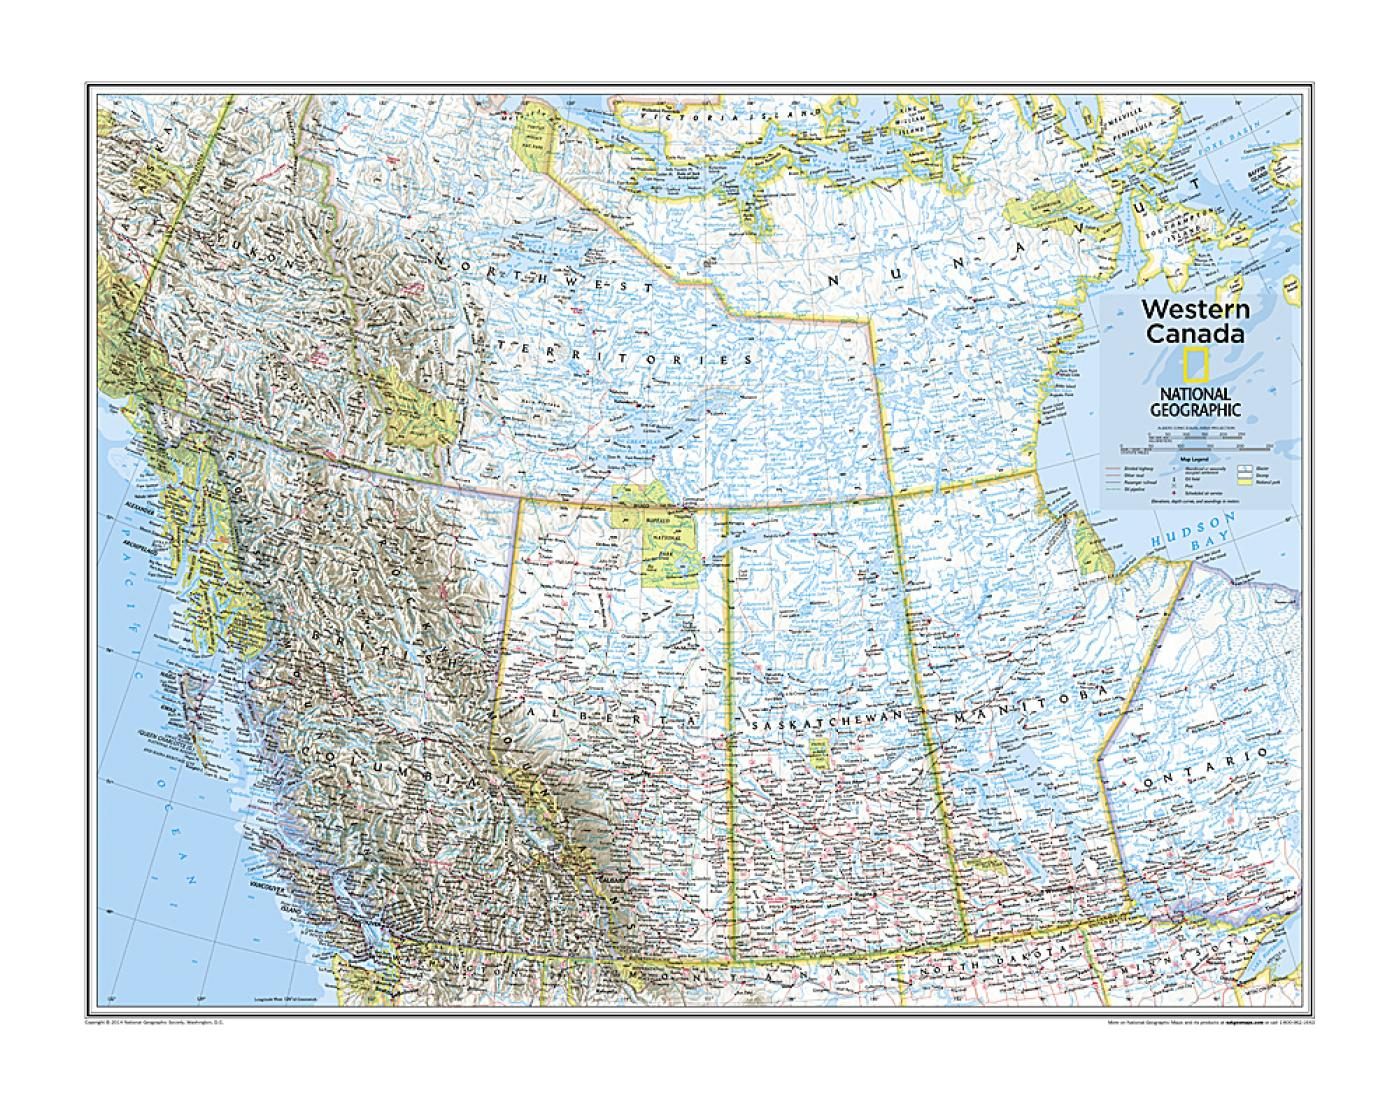 Canada Map National Geographic Western Canada   Map from National Geographic Atlas of the World